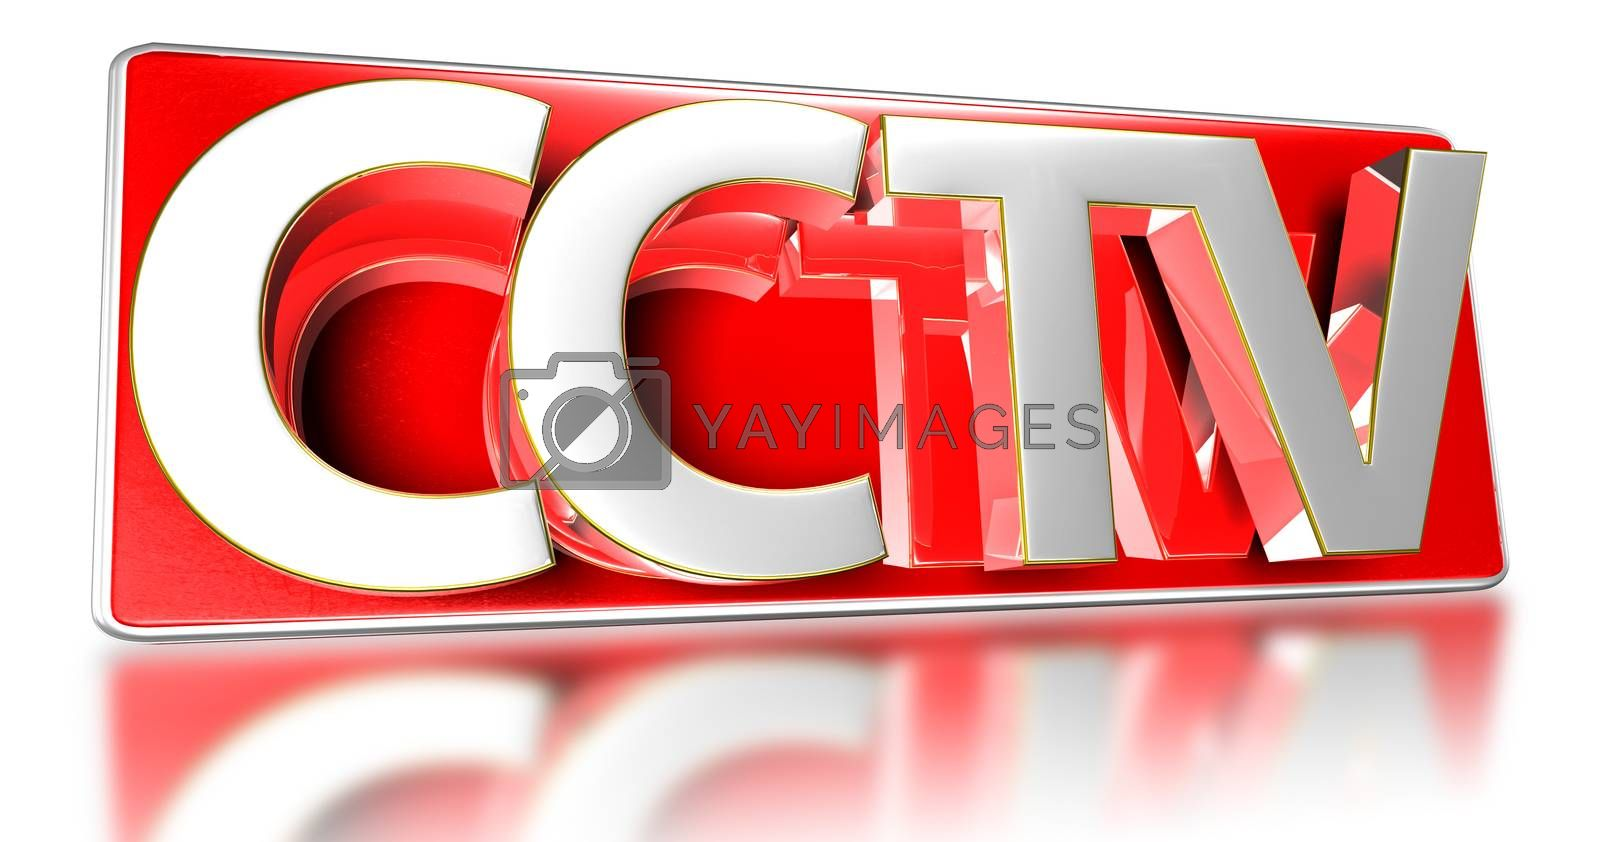 3D illustration Signs CCTV isolated on a white background.(with Clipping Path)